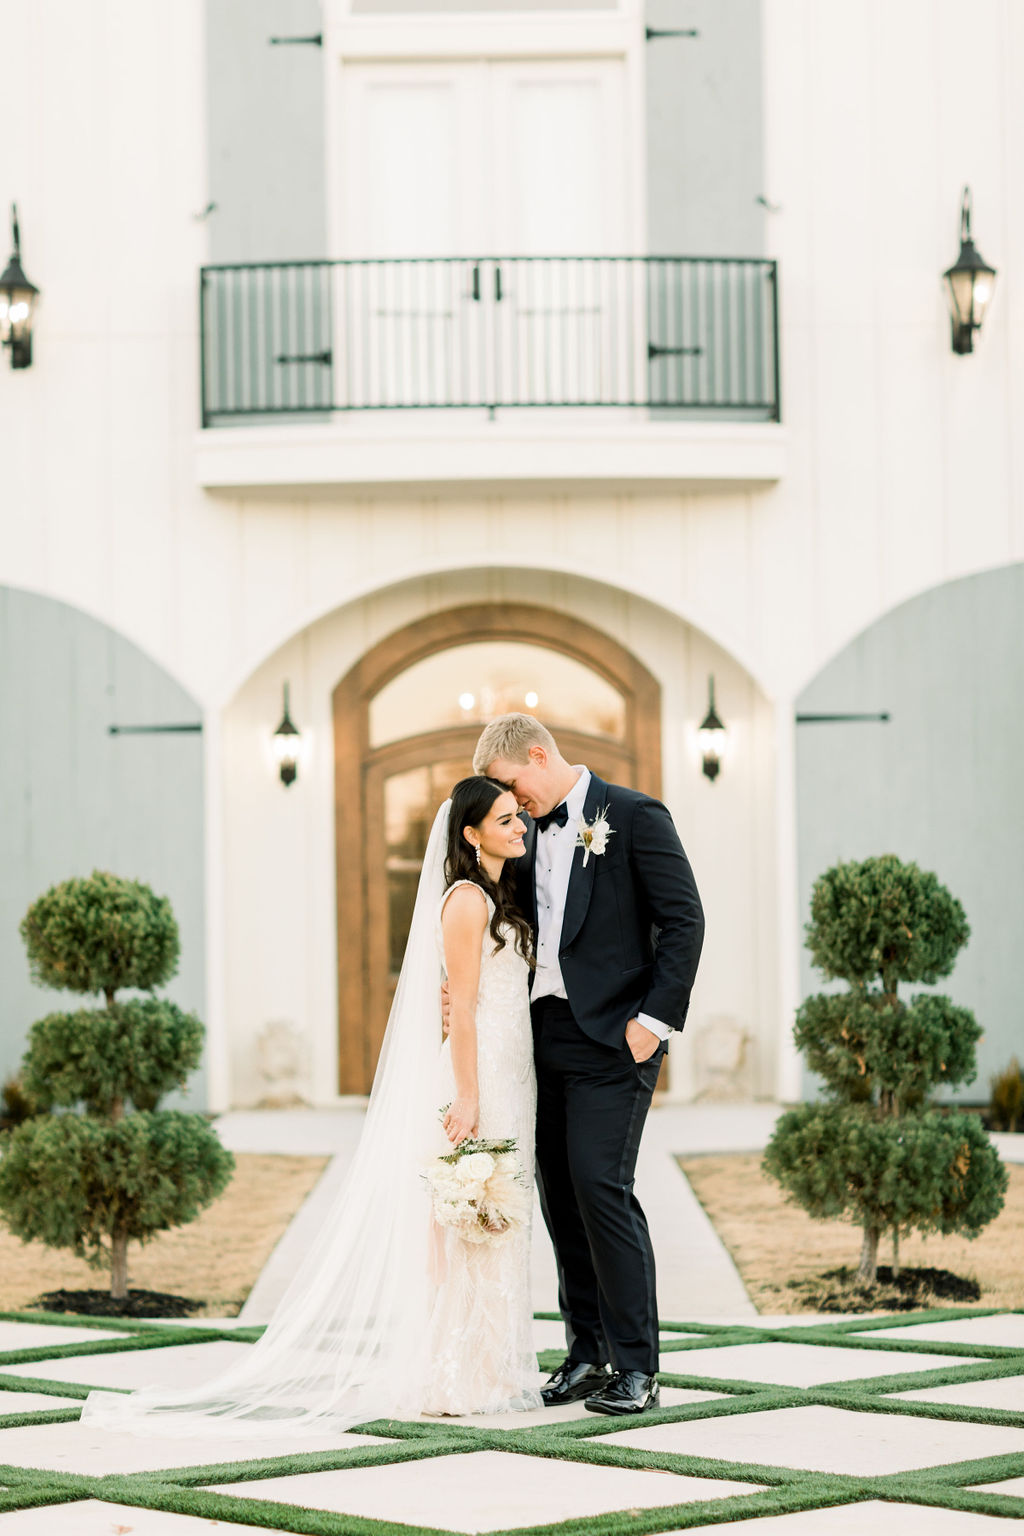 gorgeous dress from local bridal boutique and posed at the French farmhouse